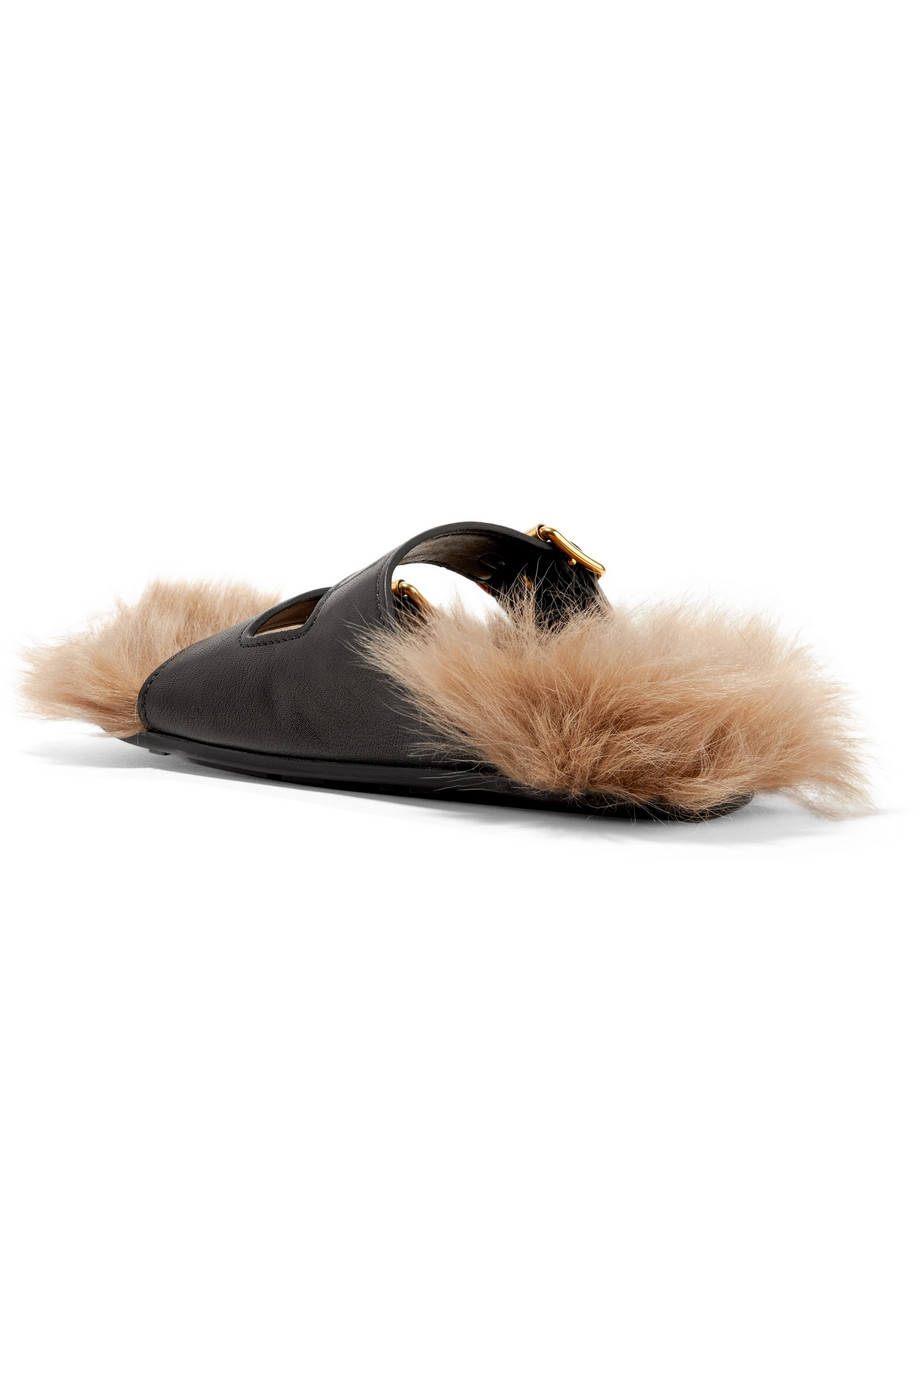 Leather slippers Prada buy Leather slippers Prada internet shop